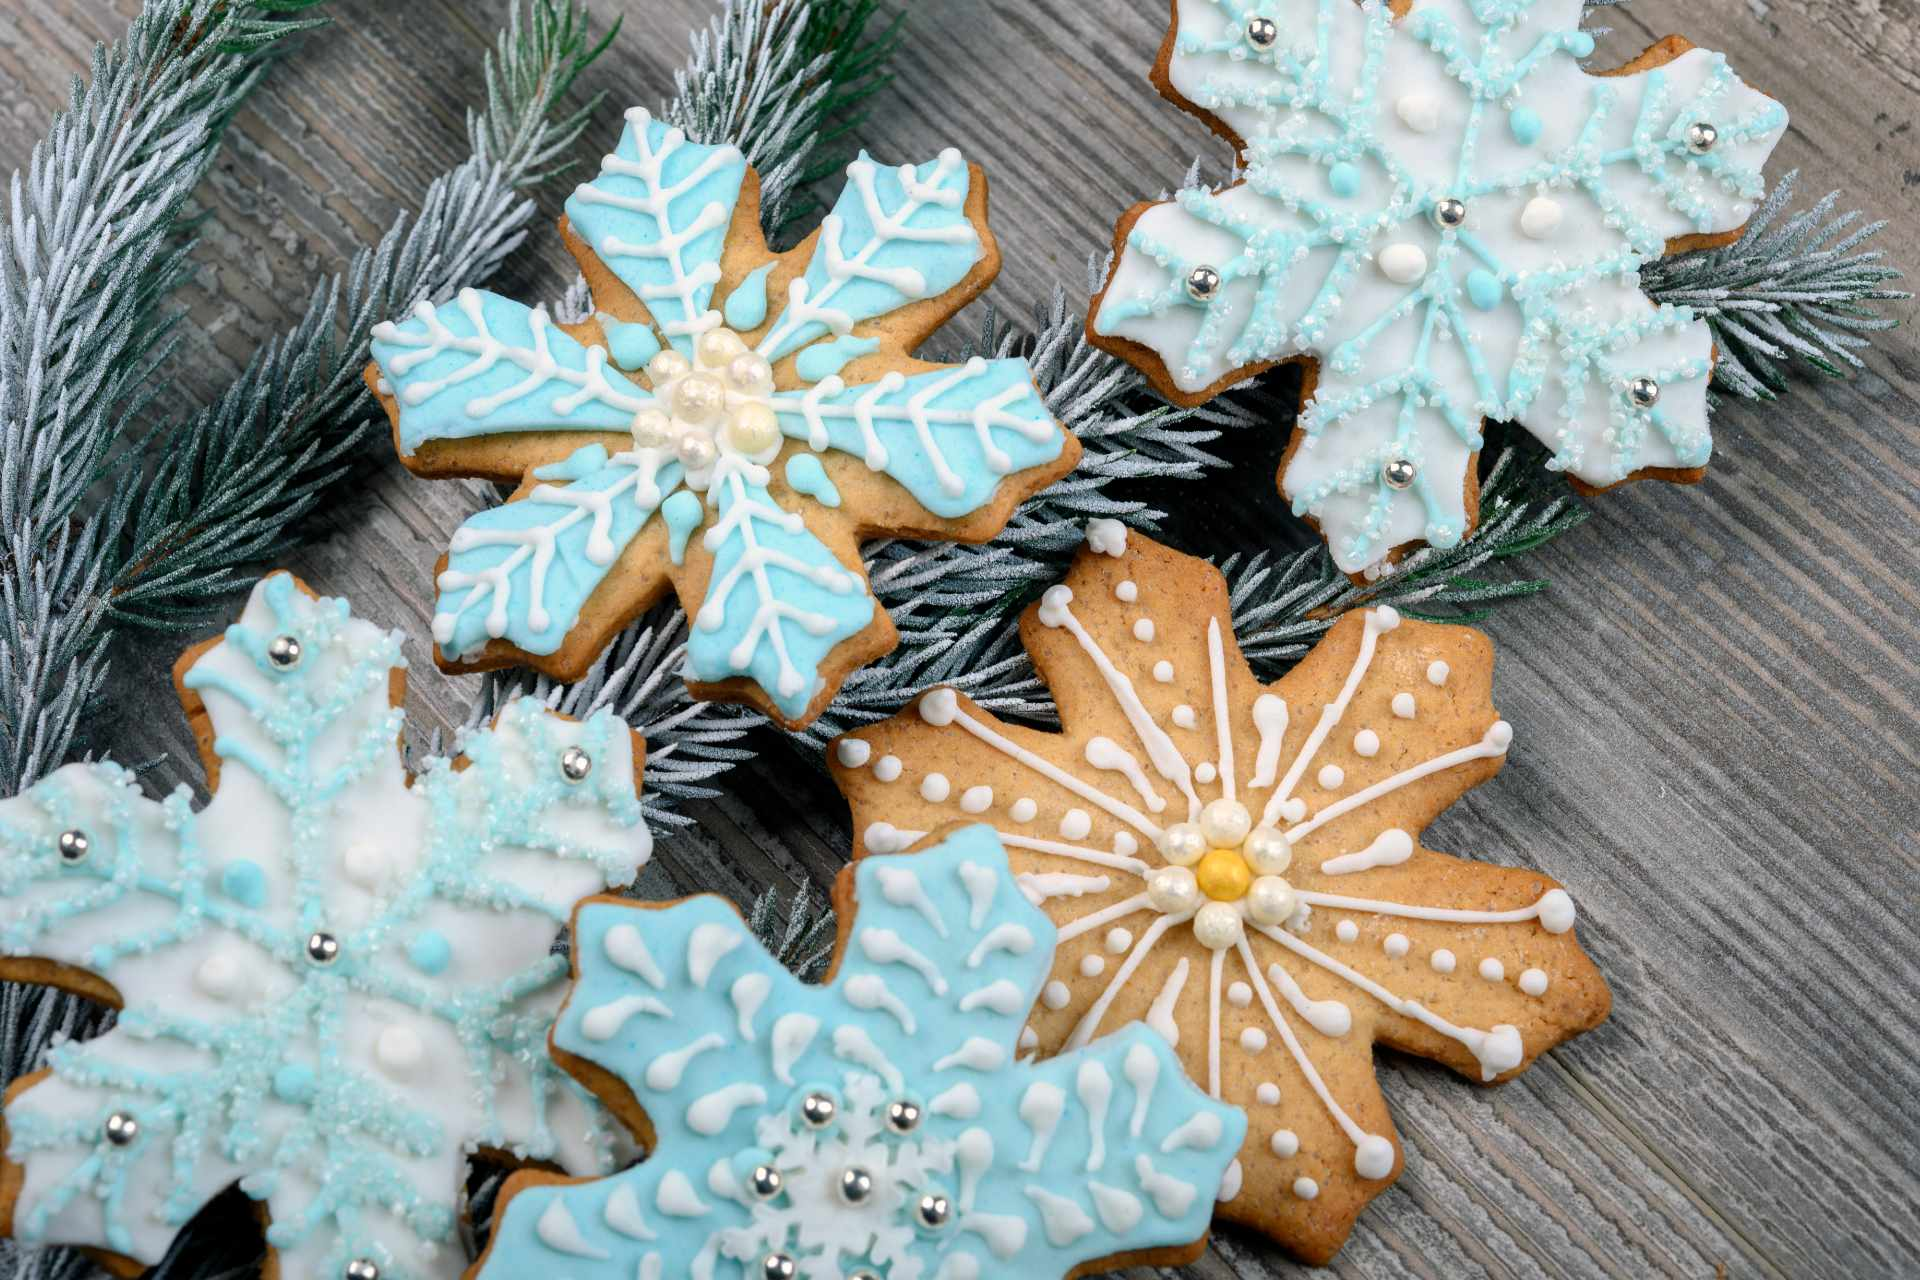 icing covered biscuits ©iStock